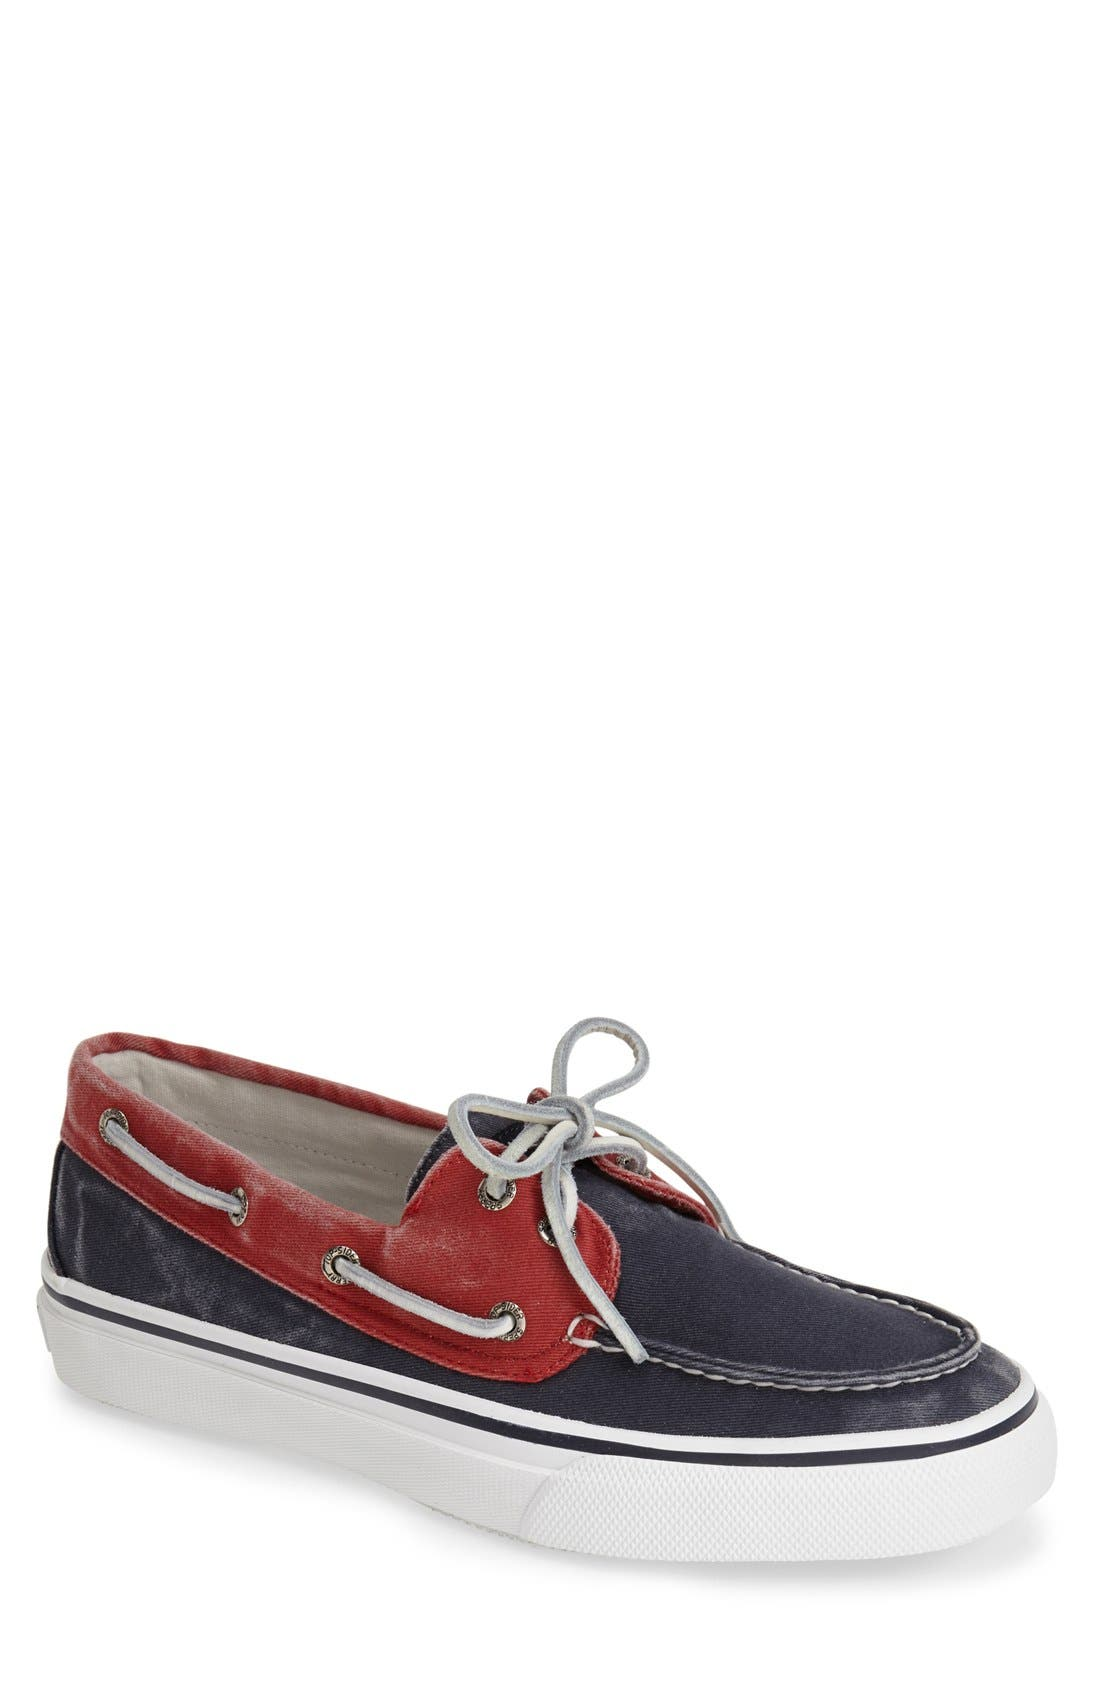 Alternate Image 1 Selected - Sperry 'Bahama' Boat Shoe